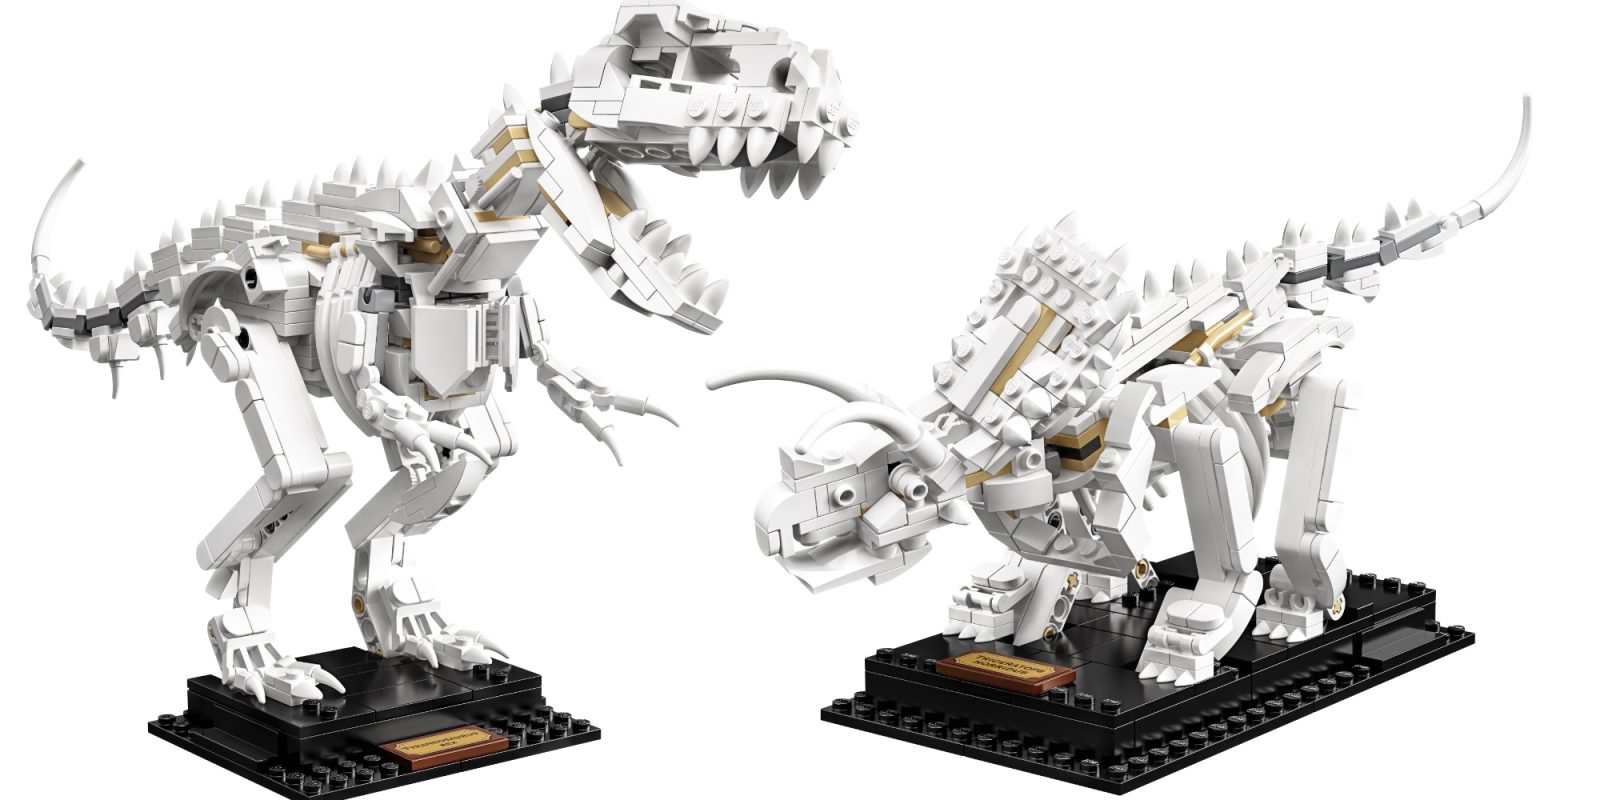 LEGO goes prehistoric with upcoming 900-piece Ideas Dinosaur Fossils kit